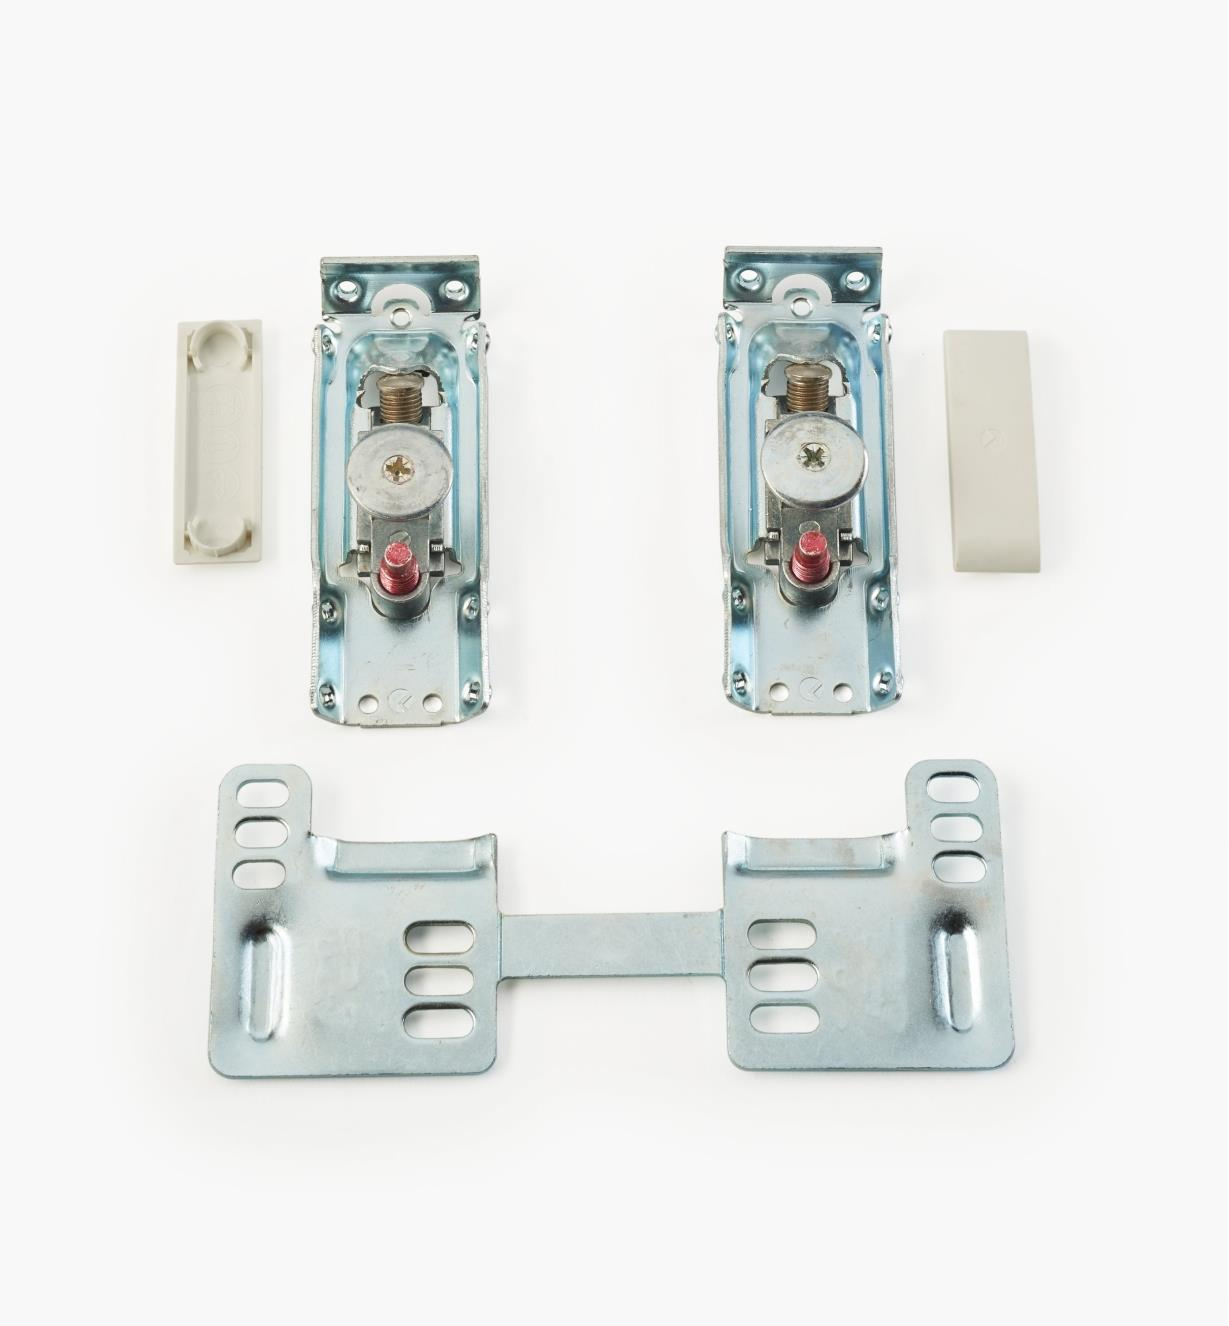 01S1945 - Adjustable Cabinet Hangers, pair